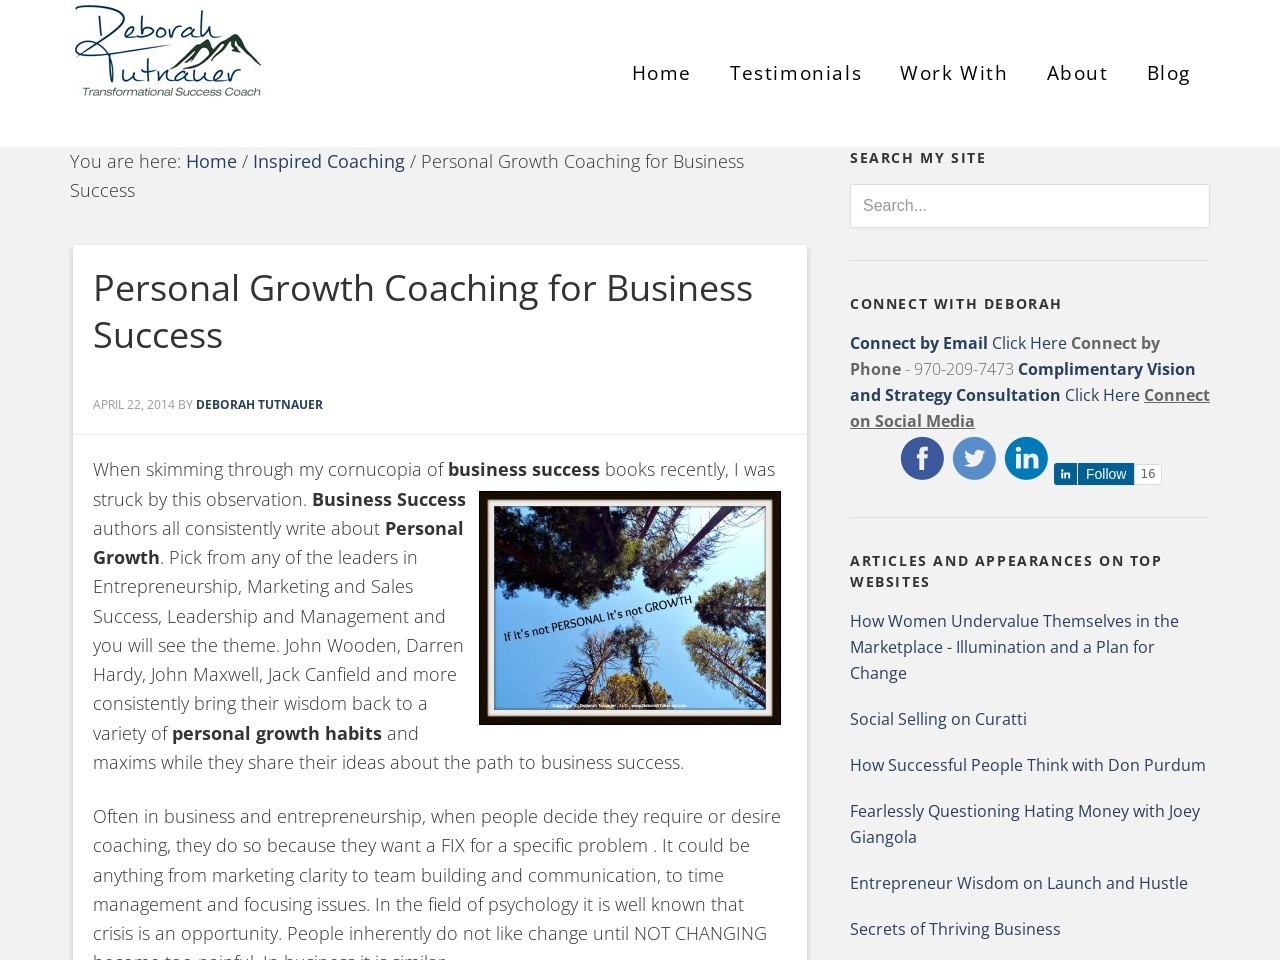 Personal Growth Coaching for Business Success